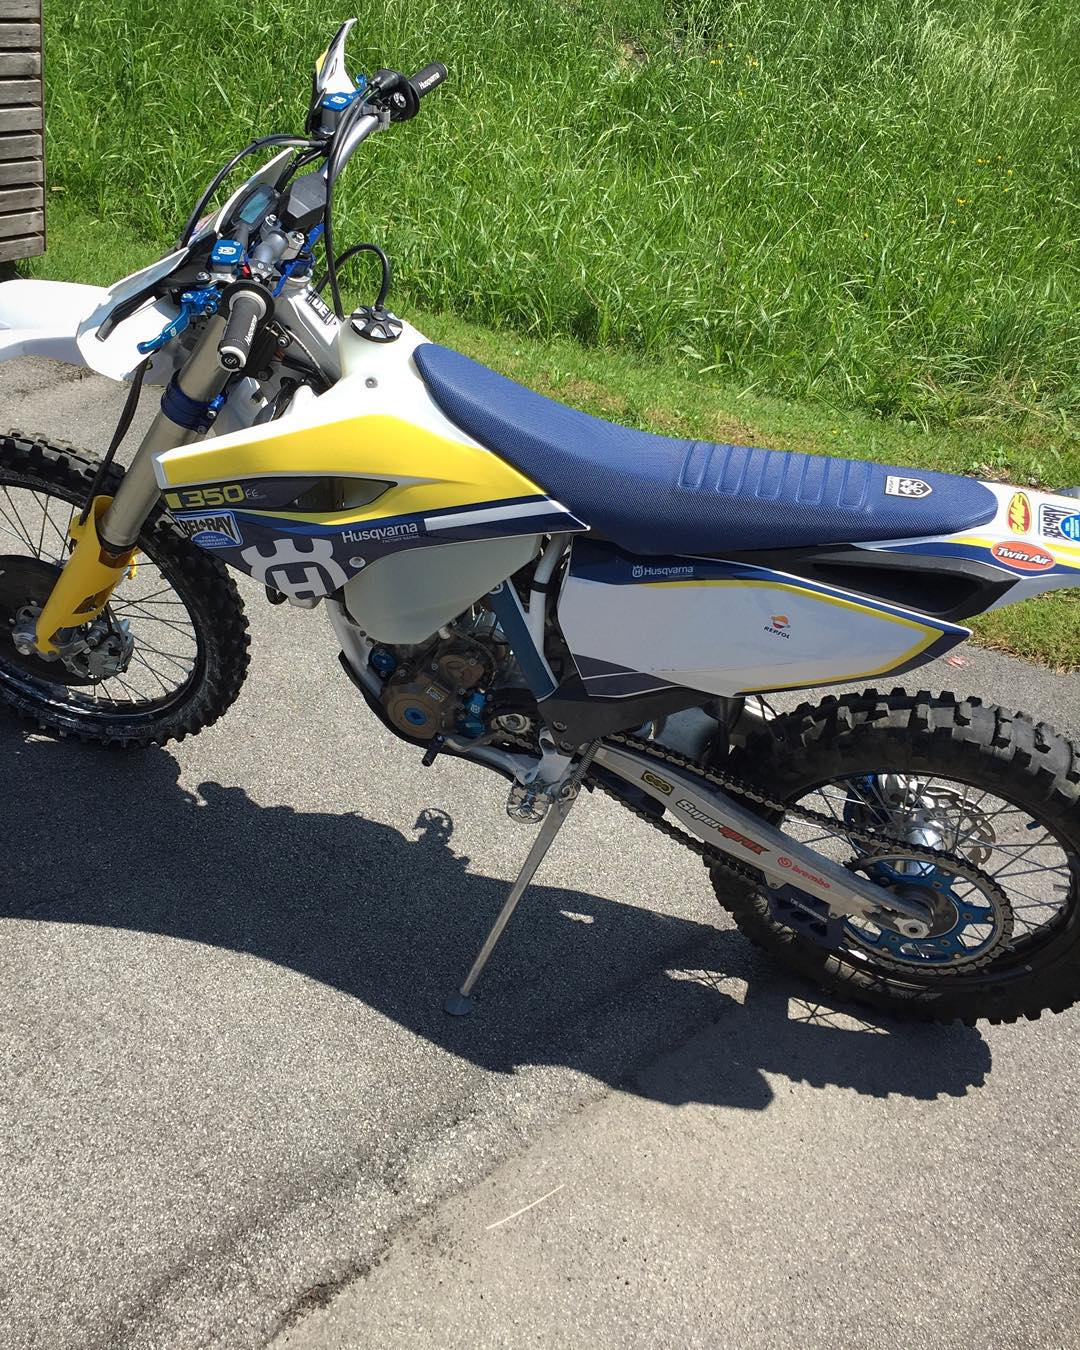 Lot of memories on this bike! #husqvarna #fe350 #enduro #moto #de_portfolio